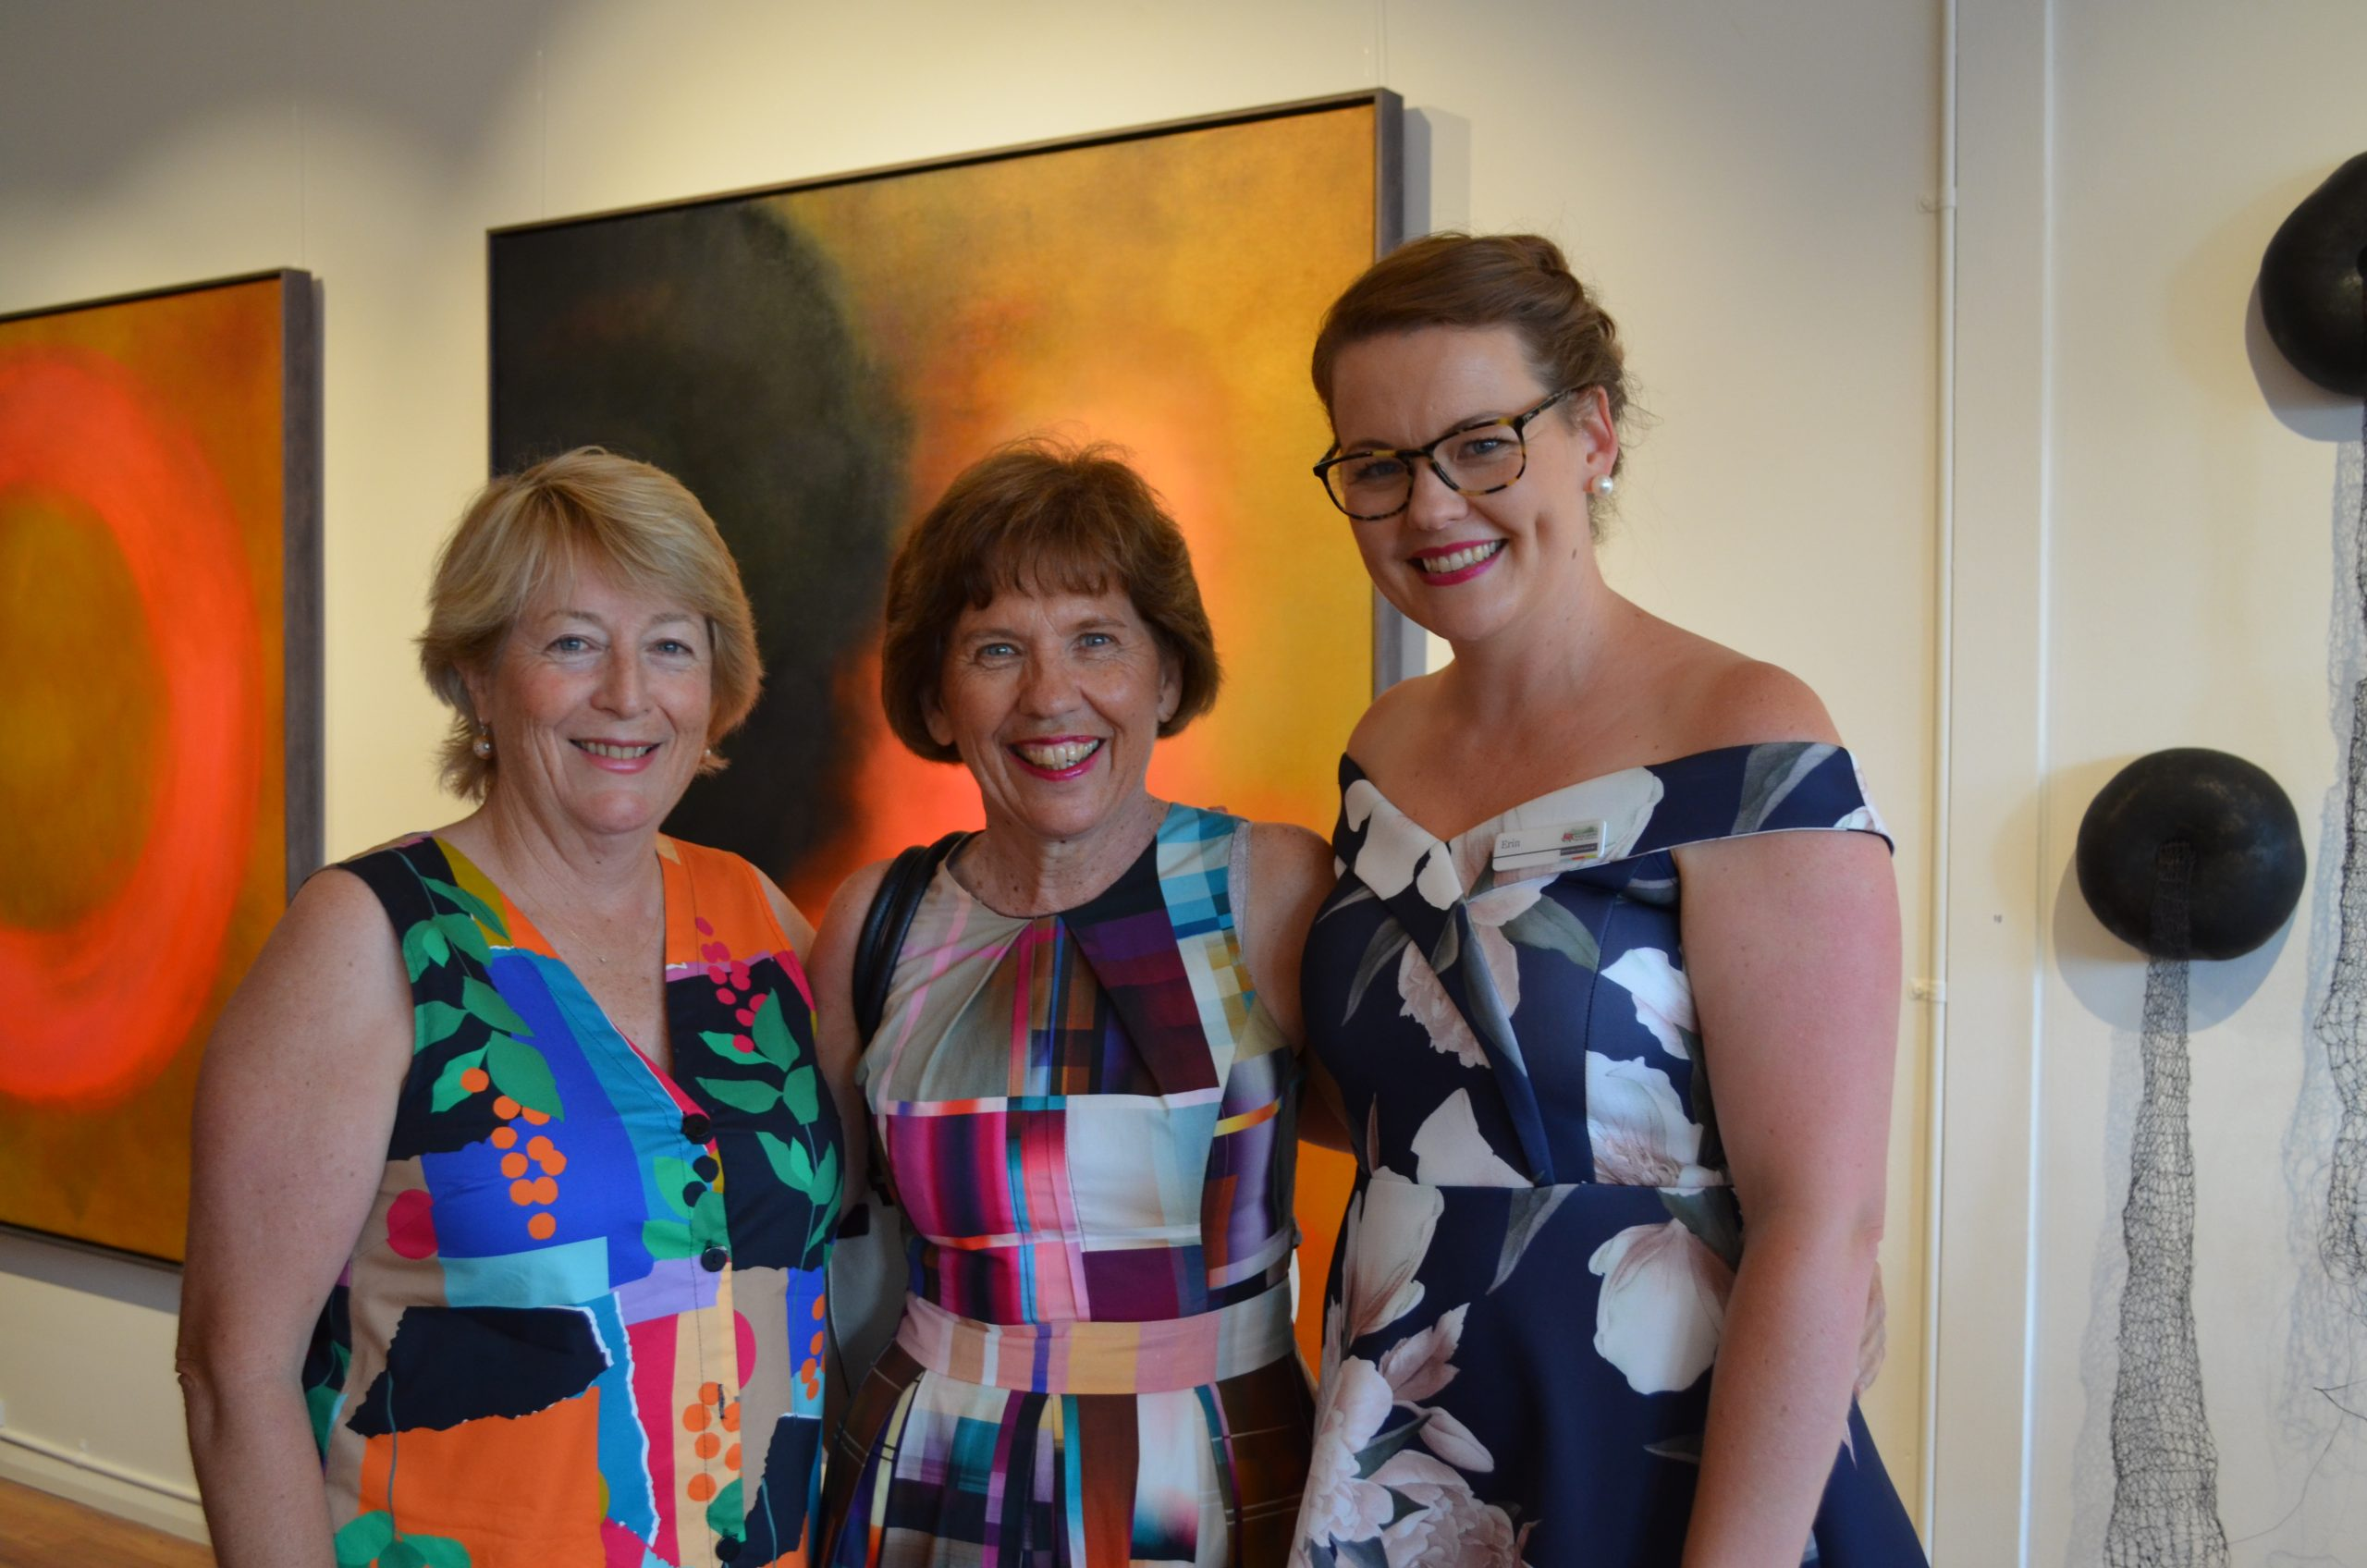 Three ladies smiling, standing in front of colourful abstract artwork